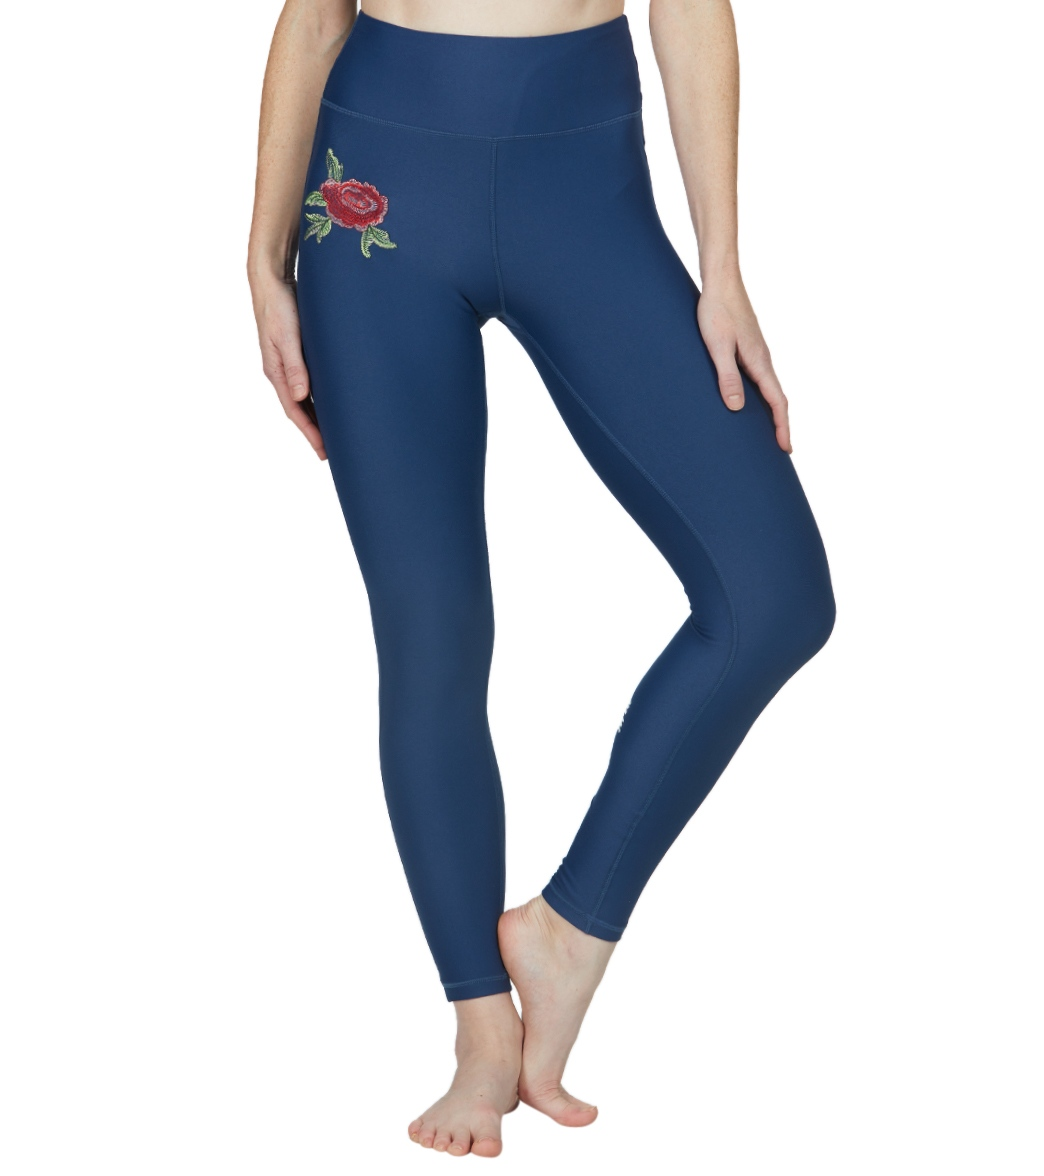 6fde6a6b103c2f Spiritual Gangster Perfect High Waisted Leggings at YogaOutlet.com - Free  Shipping